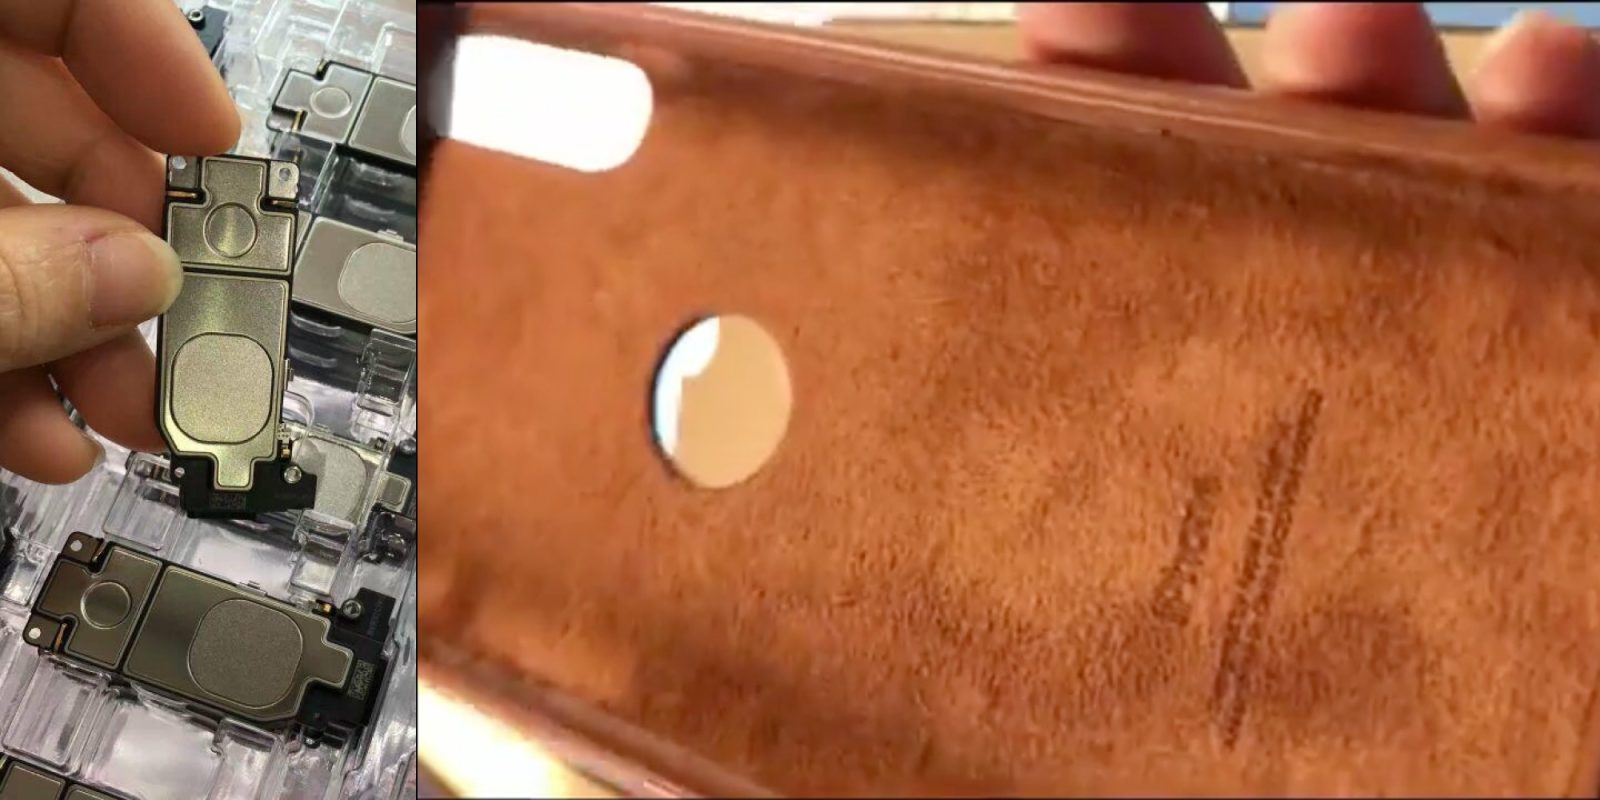 More OLED iPhone 8 components surface as video claims to